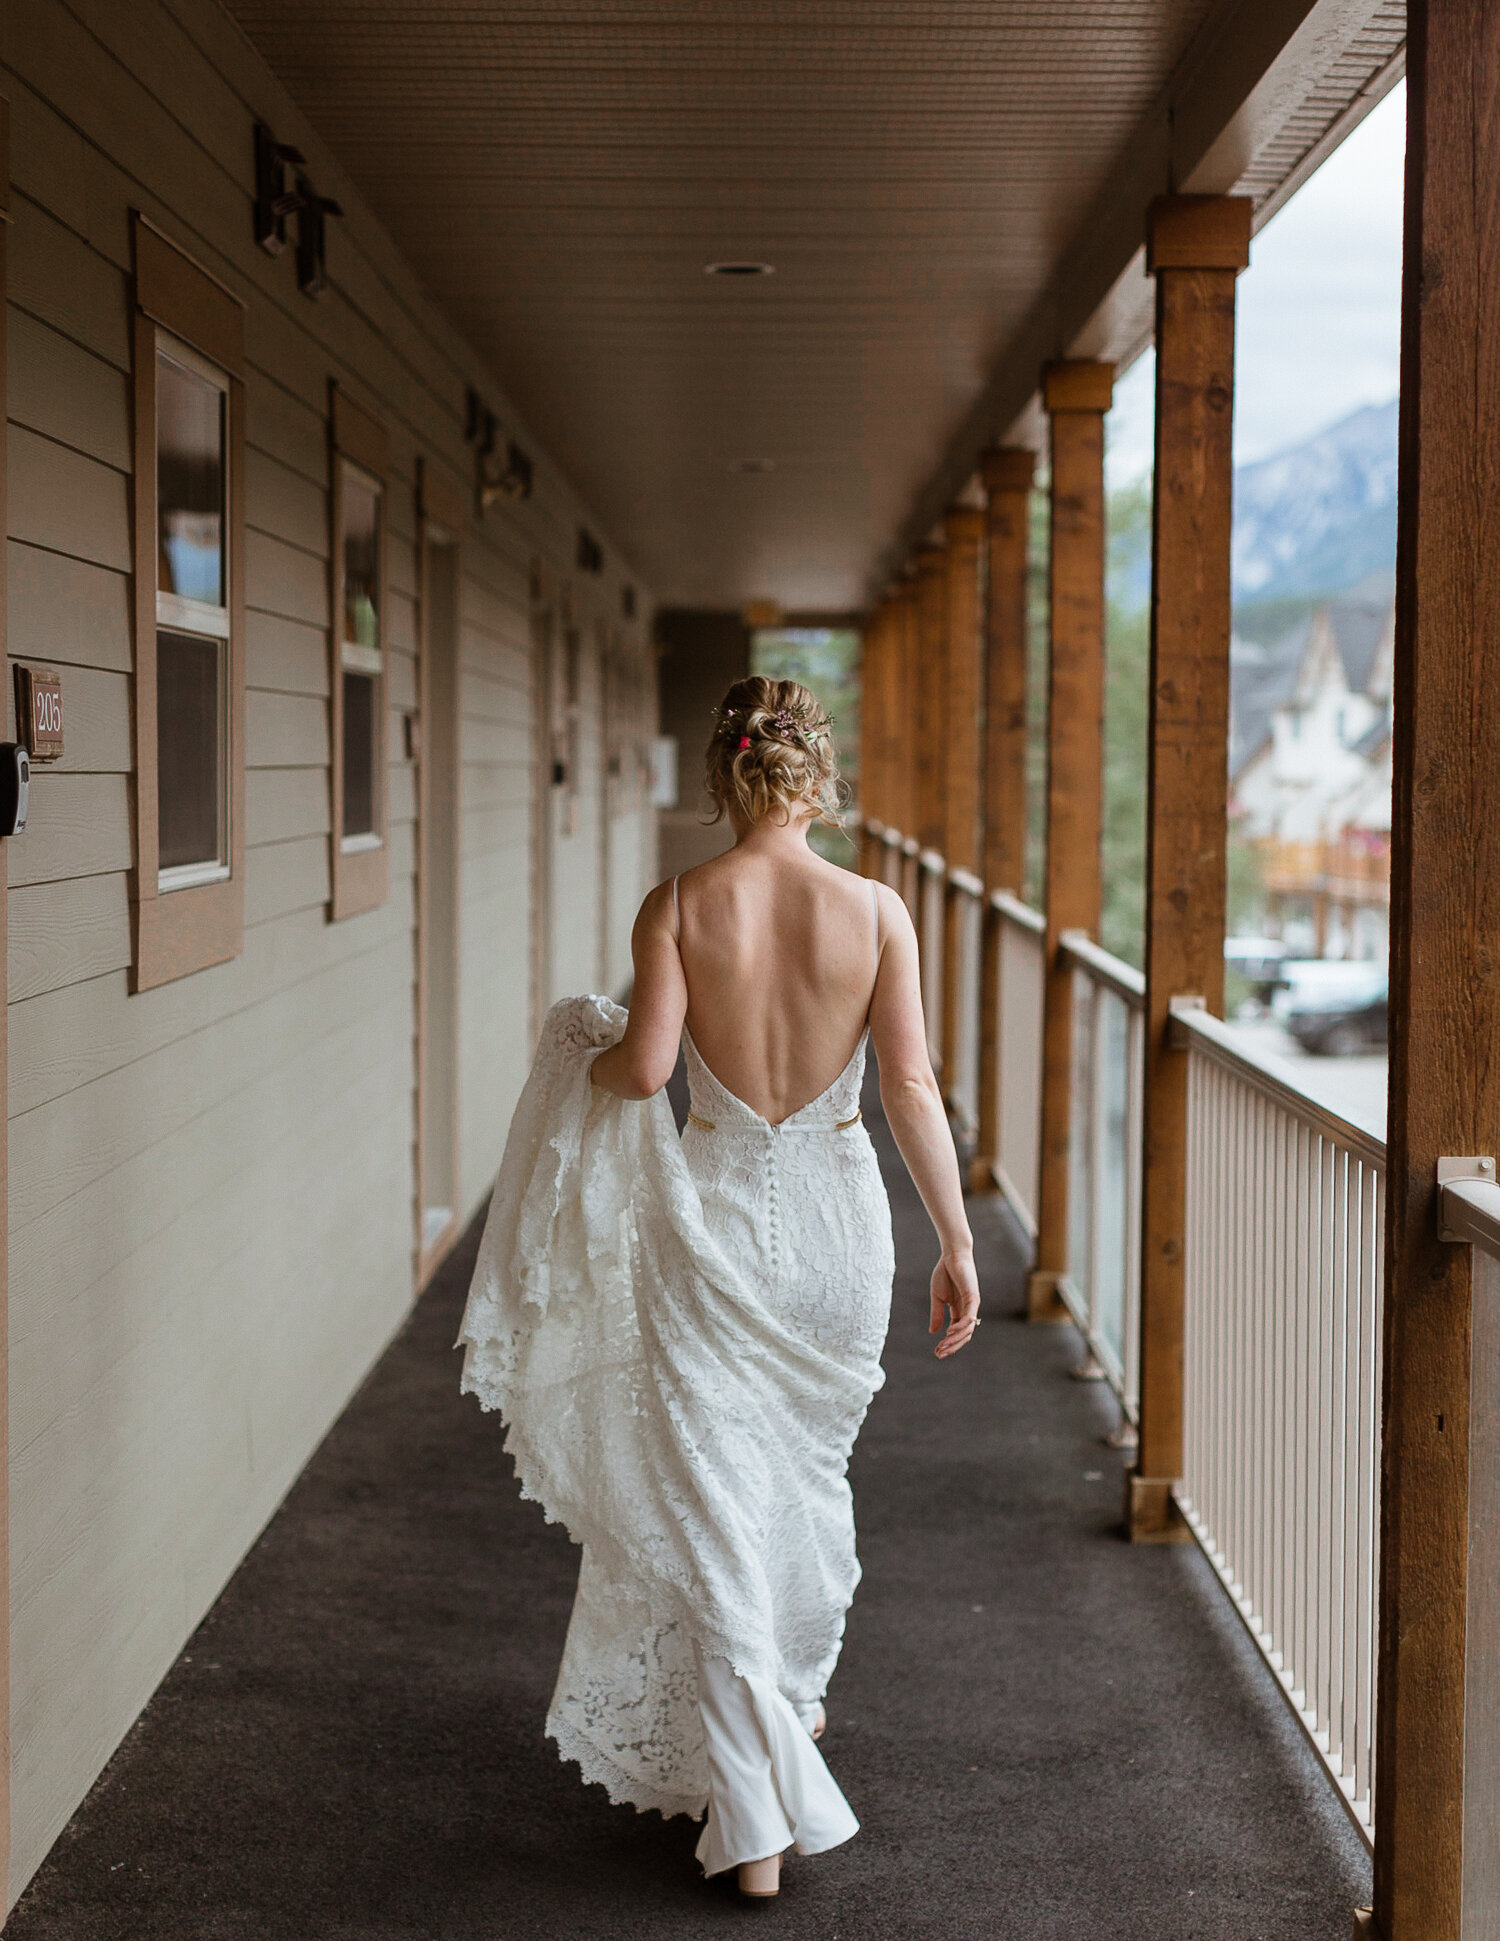 24-Canmore-Alberta-Real-Wedding-Best-Wedding-Photographers-26.JPG